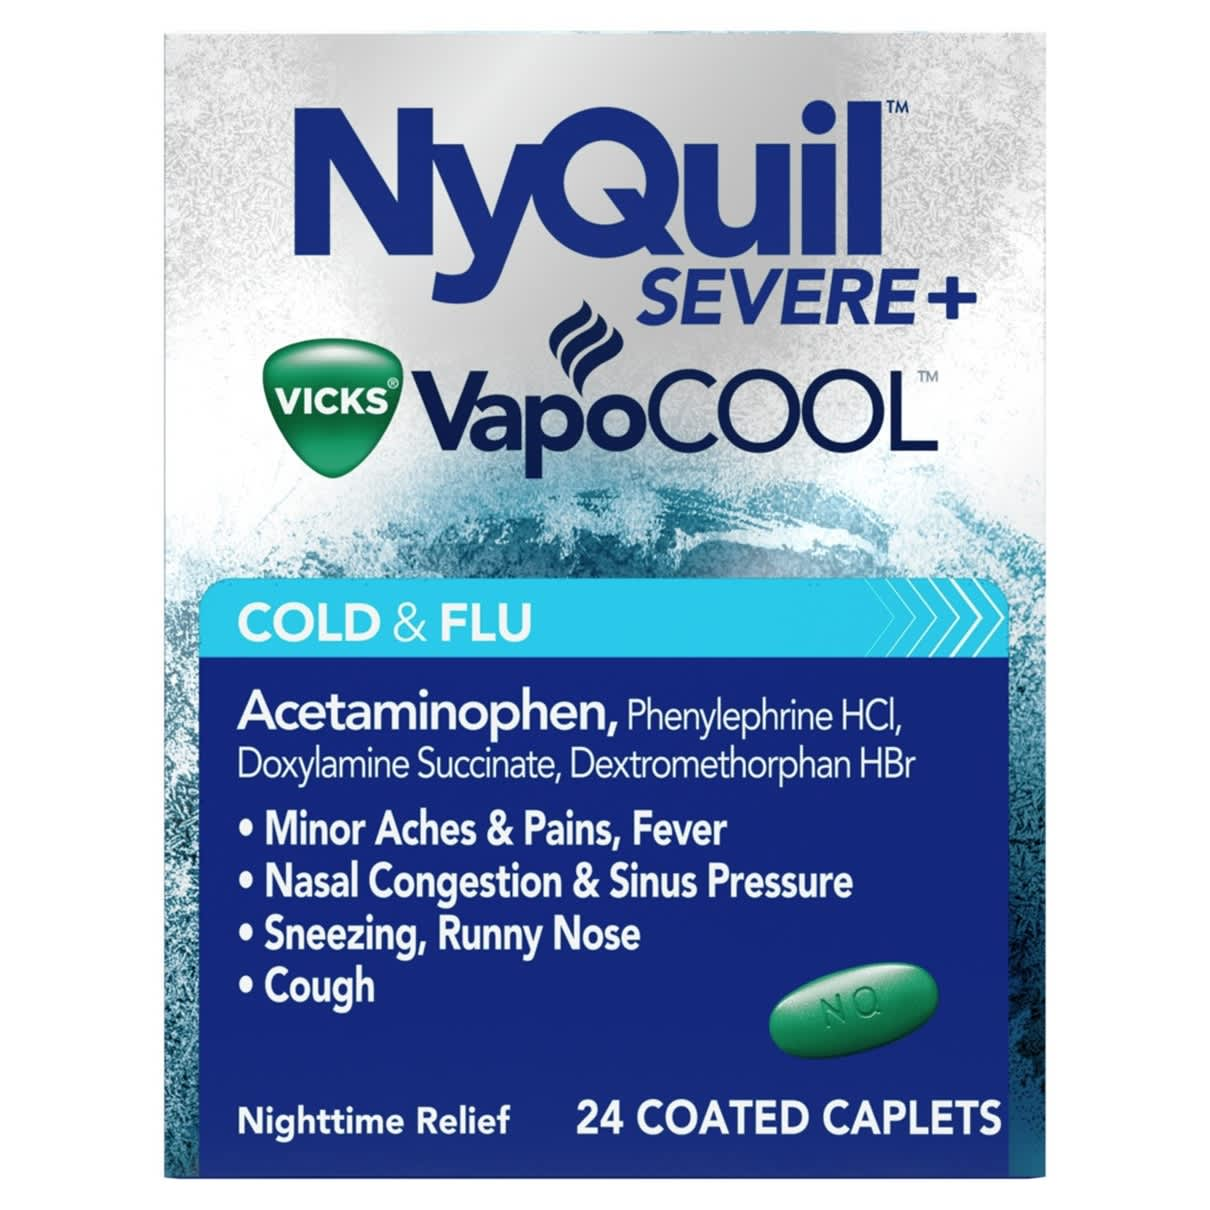 NyQuil Severe+ VapoCool Cold & Flu Main Image